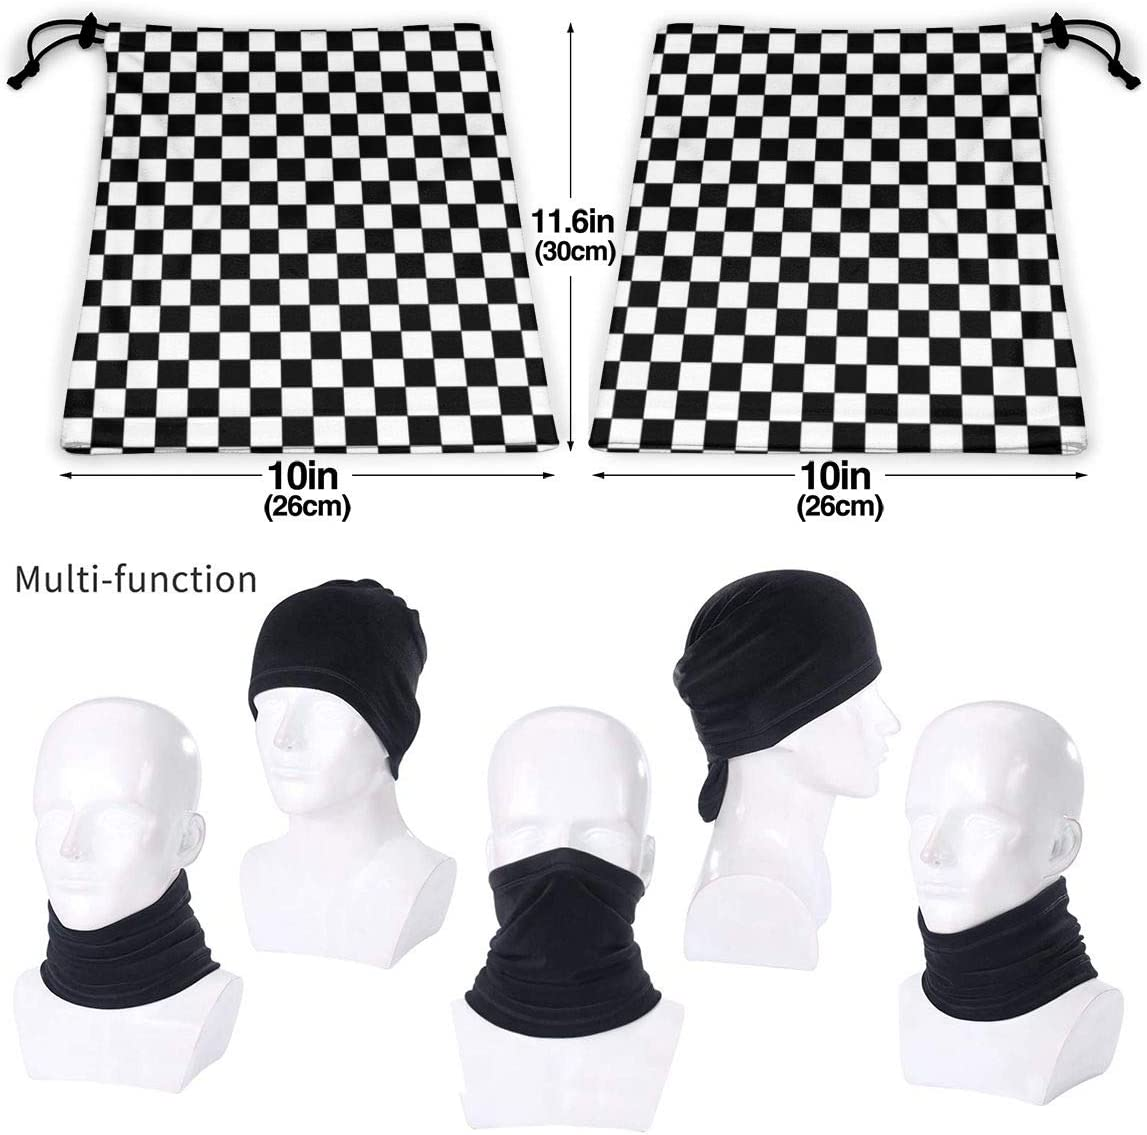 CLERO& Scarf Fleece Neck Warmer Black and White Squares Windproof Winter Neck Gaiter Cold Weather Face Mask for Men Women